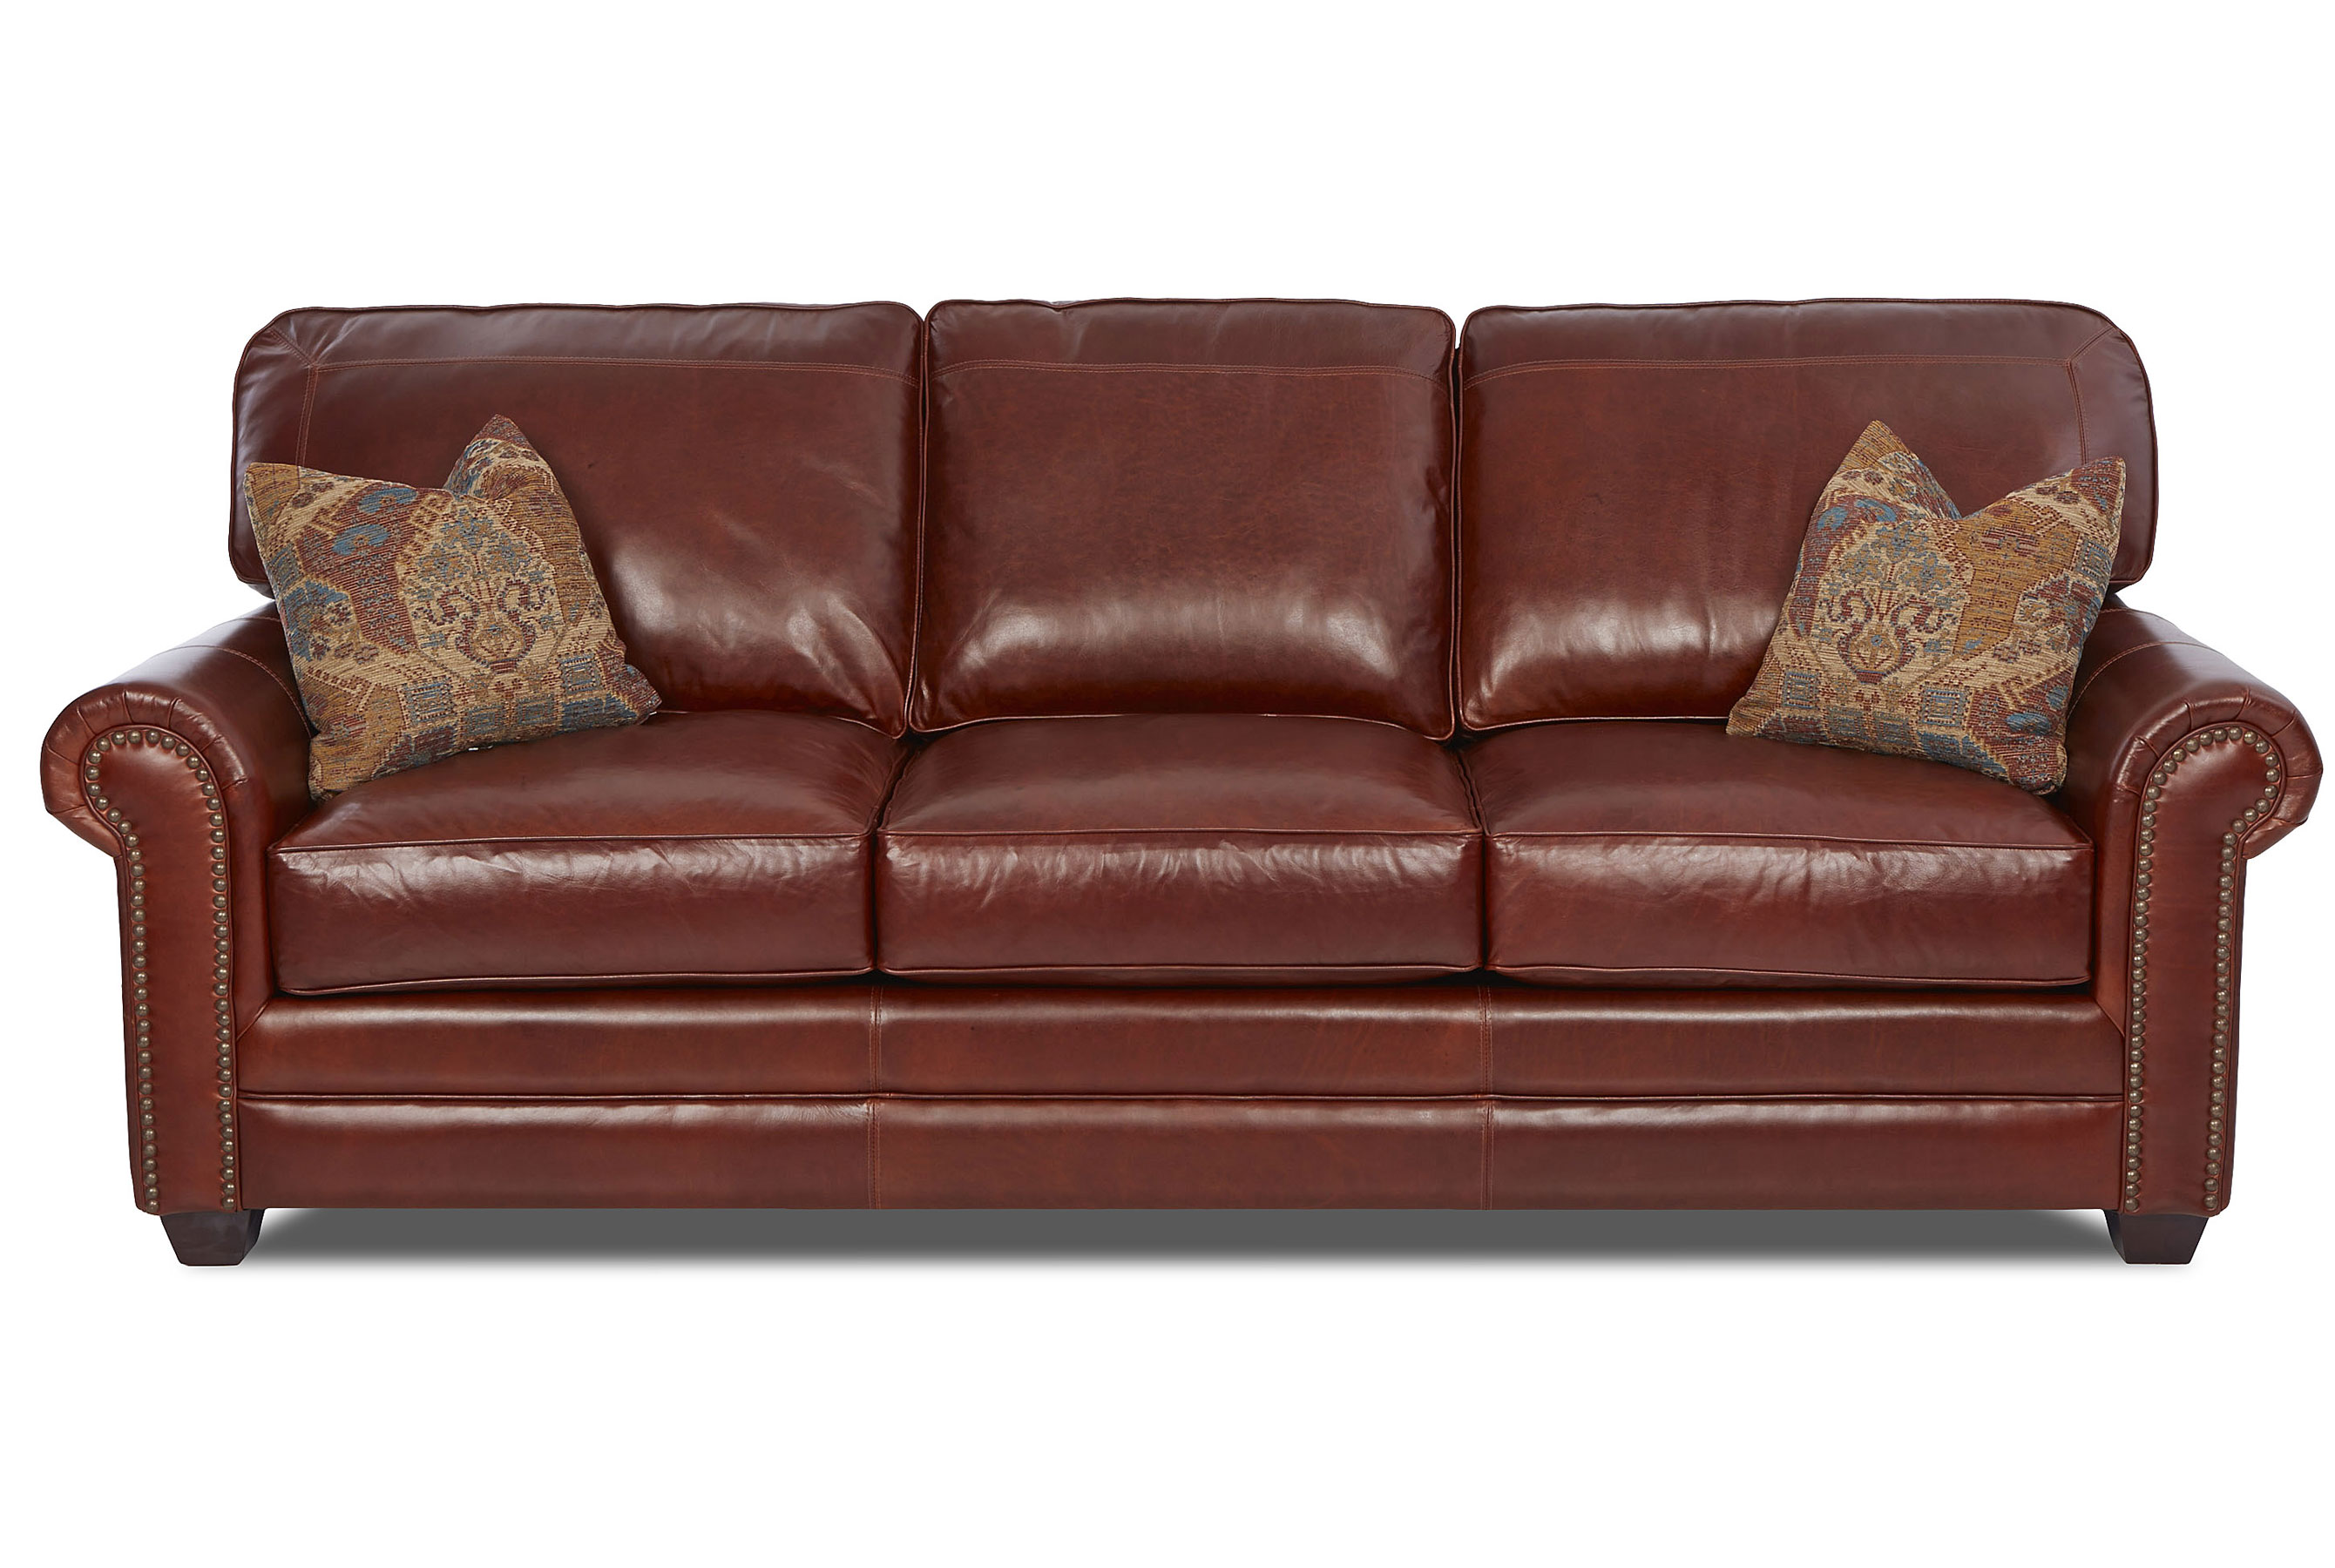 Epic Stationary Nailhead Leather Sofa Sofas And Sectionals